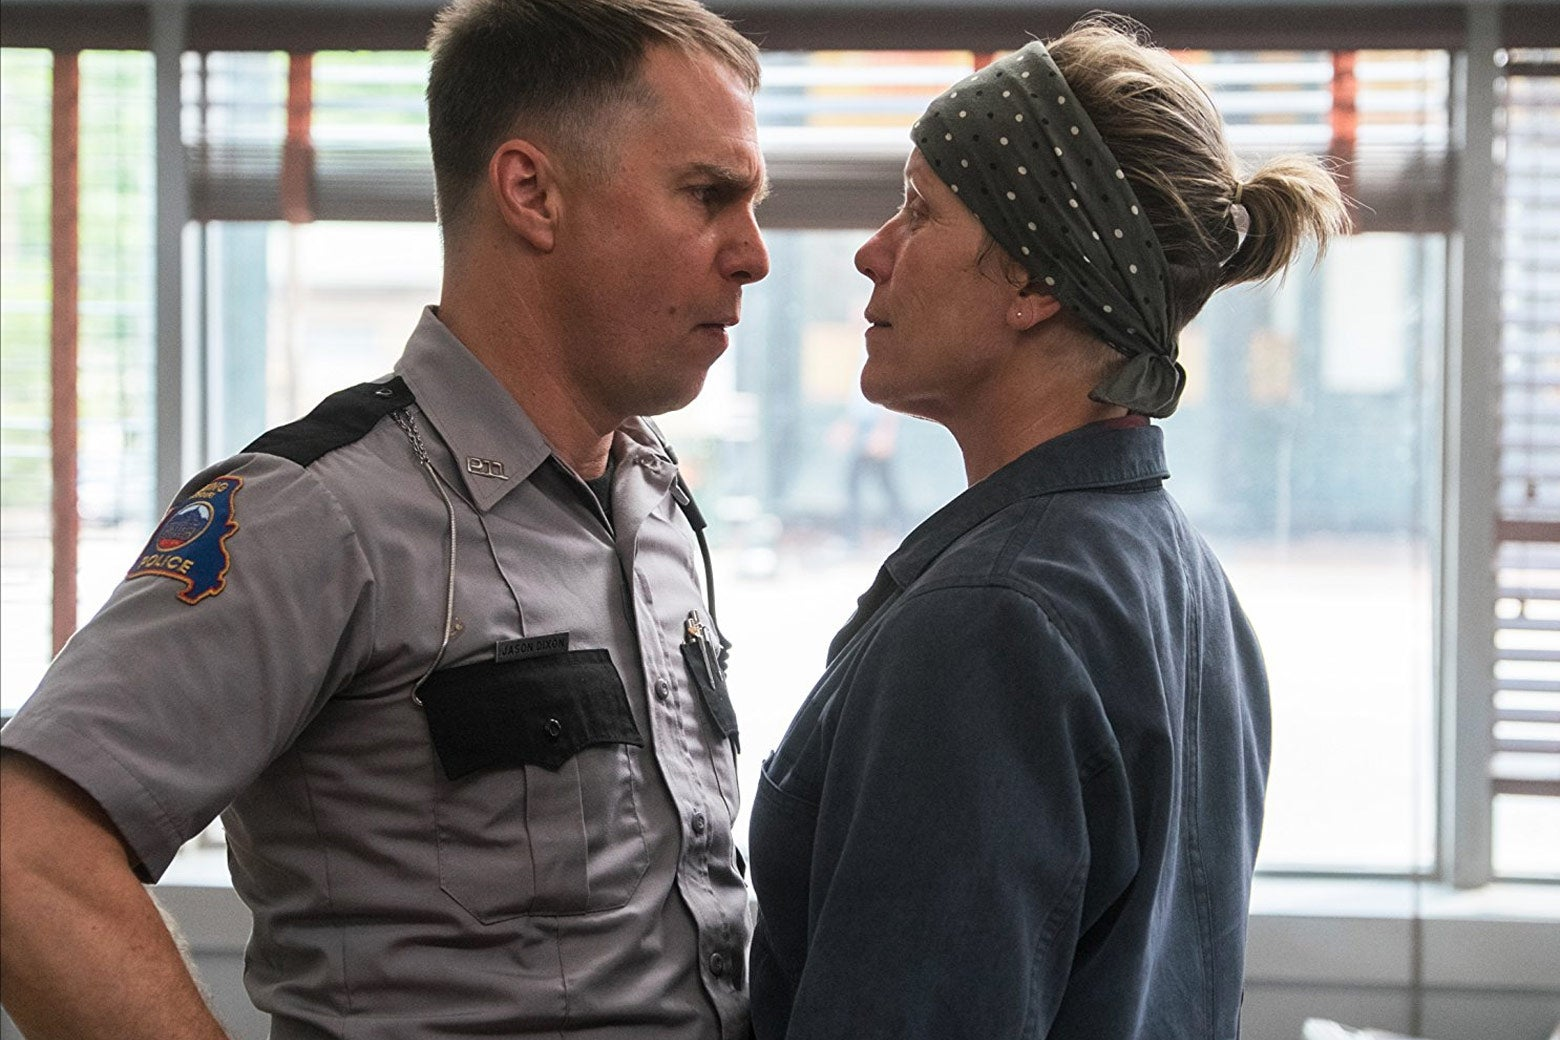 Sam Rockwell and Frances McDormand in Three Billboards Outside Ebbing, Missouri.